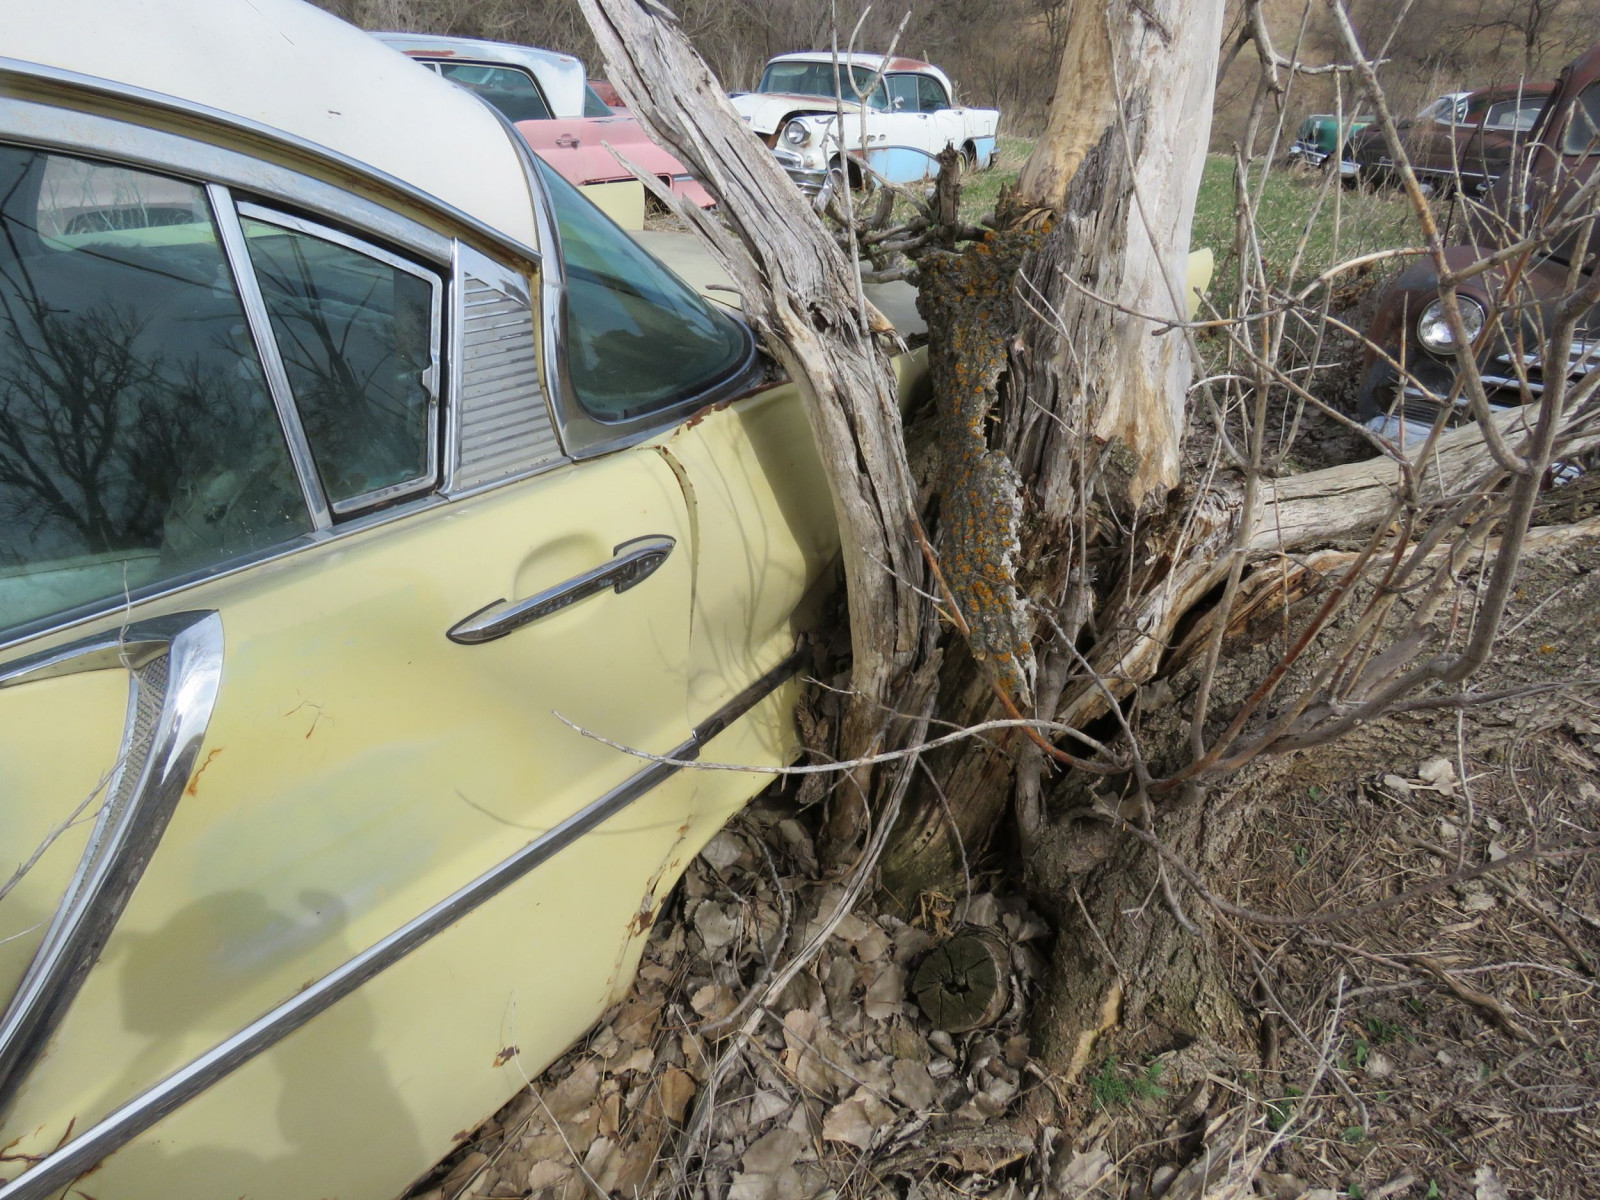 1958 Lincoln Premier 4dr Sedan for Project or parts - Image 3